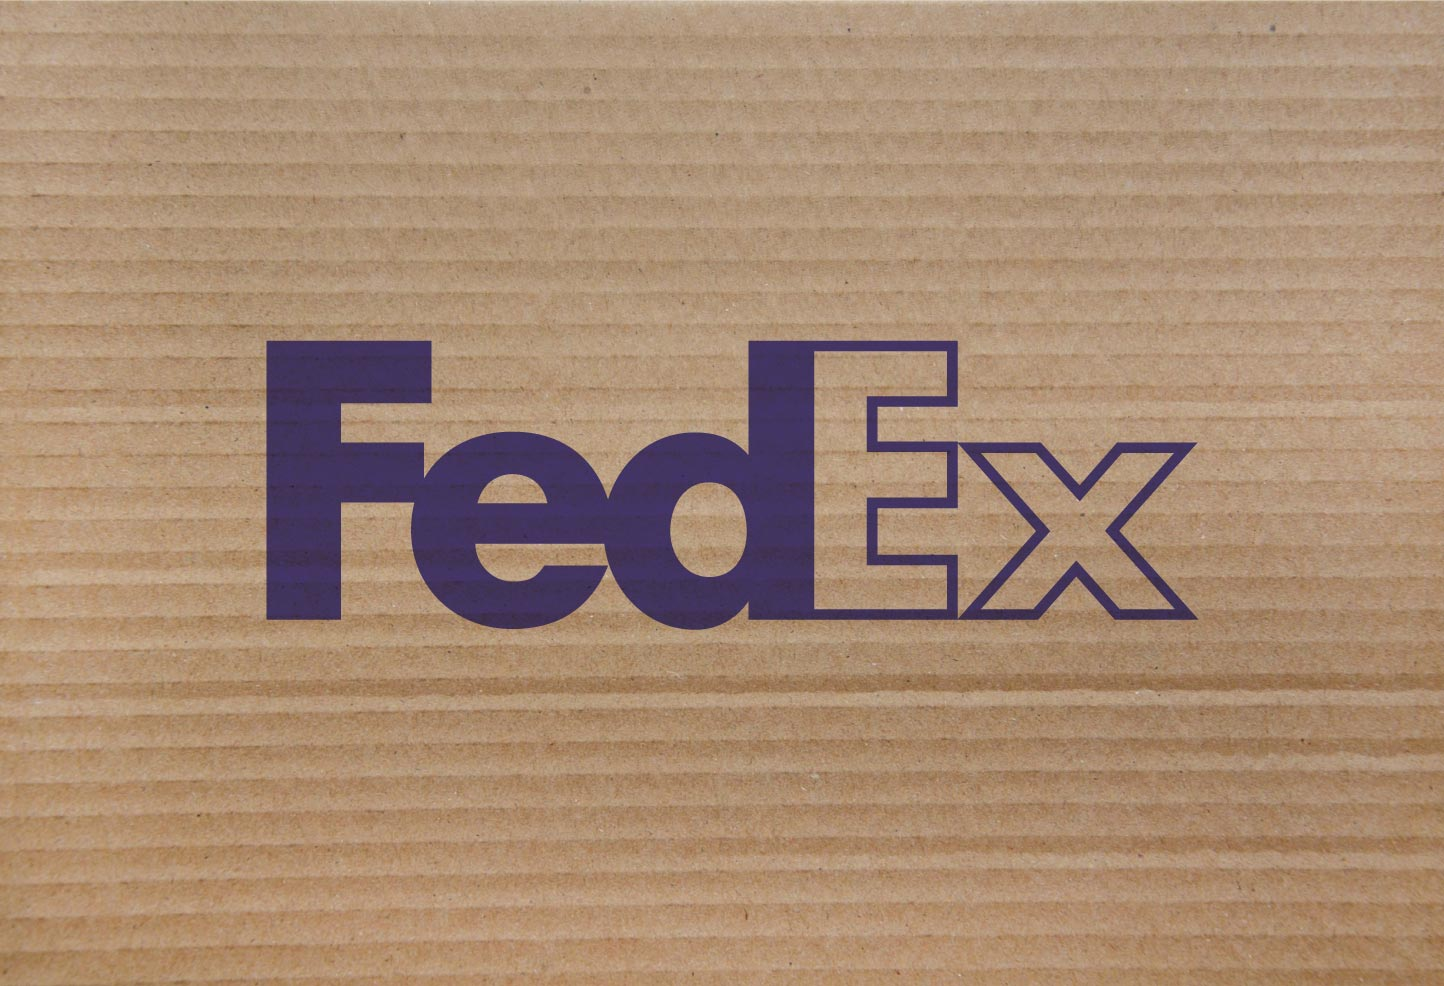 History of the FedEx Logo